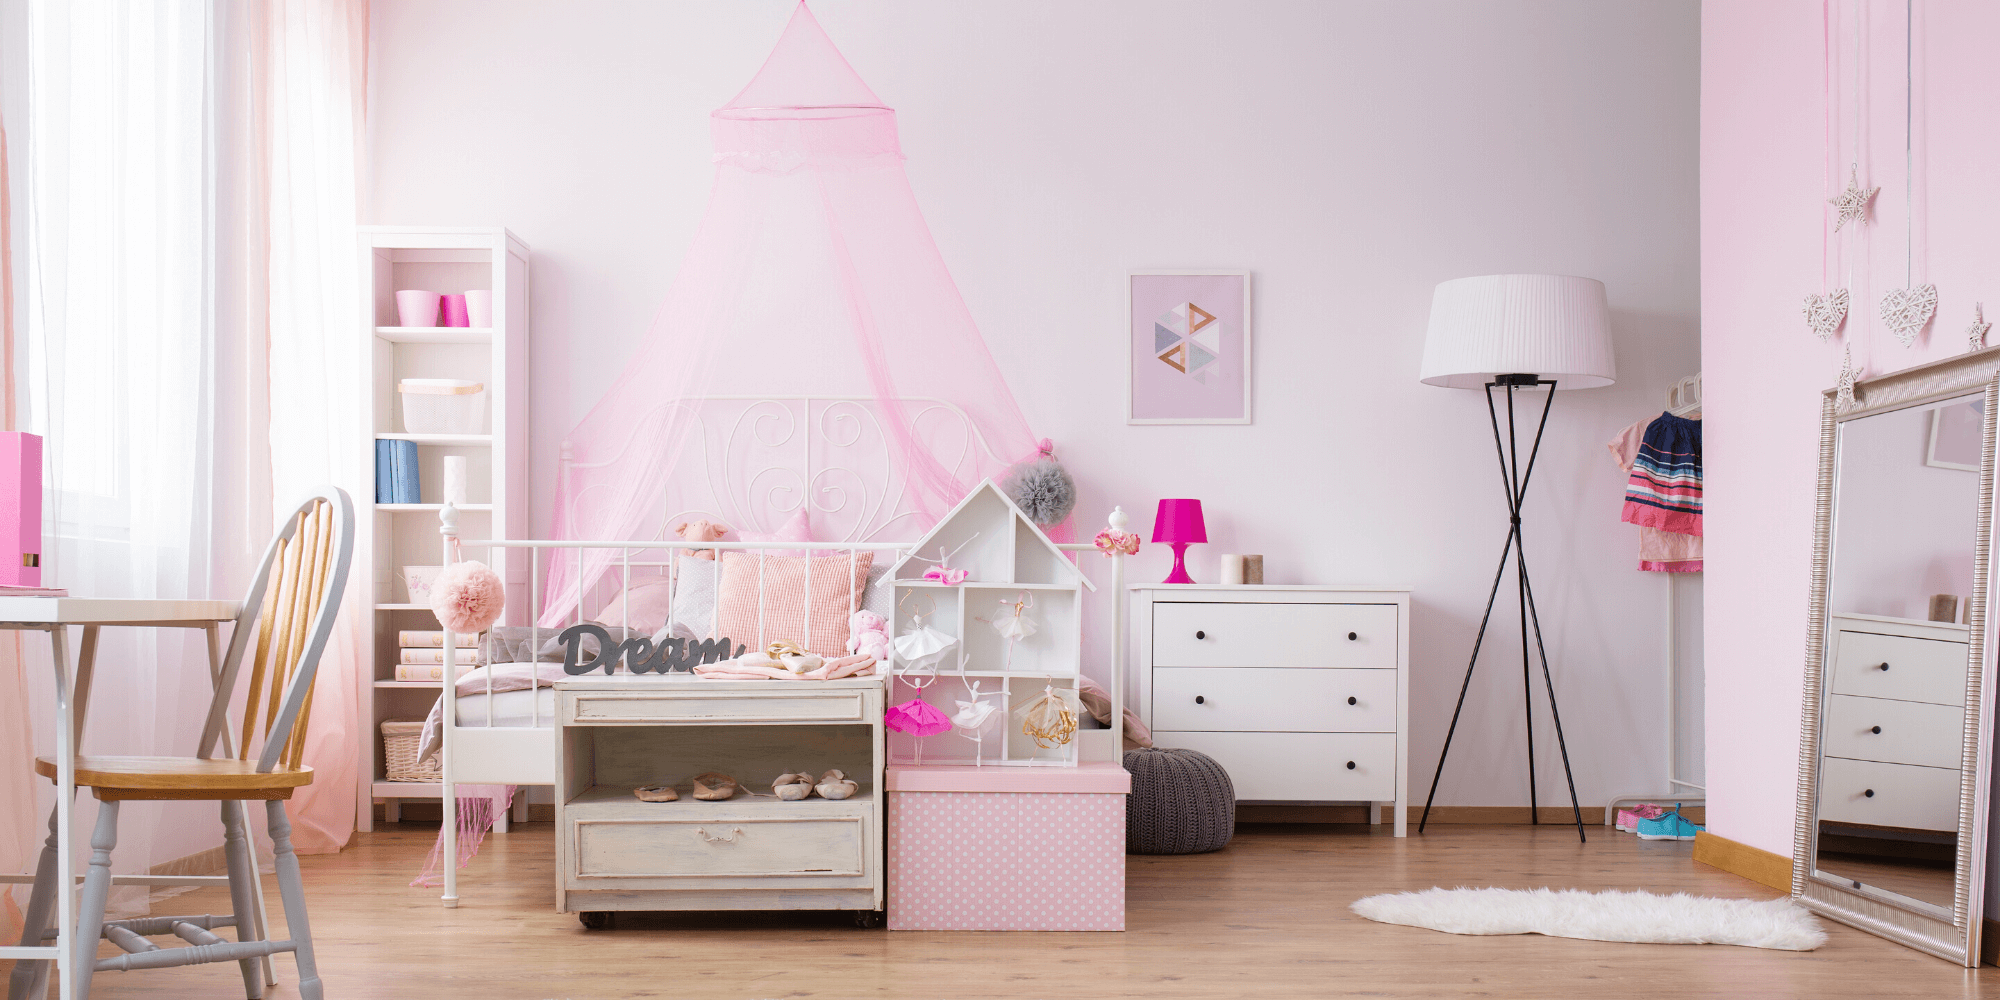 Girls bedroom decorated in pink